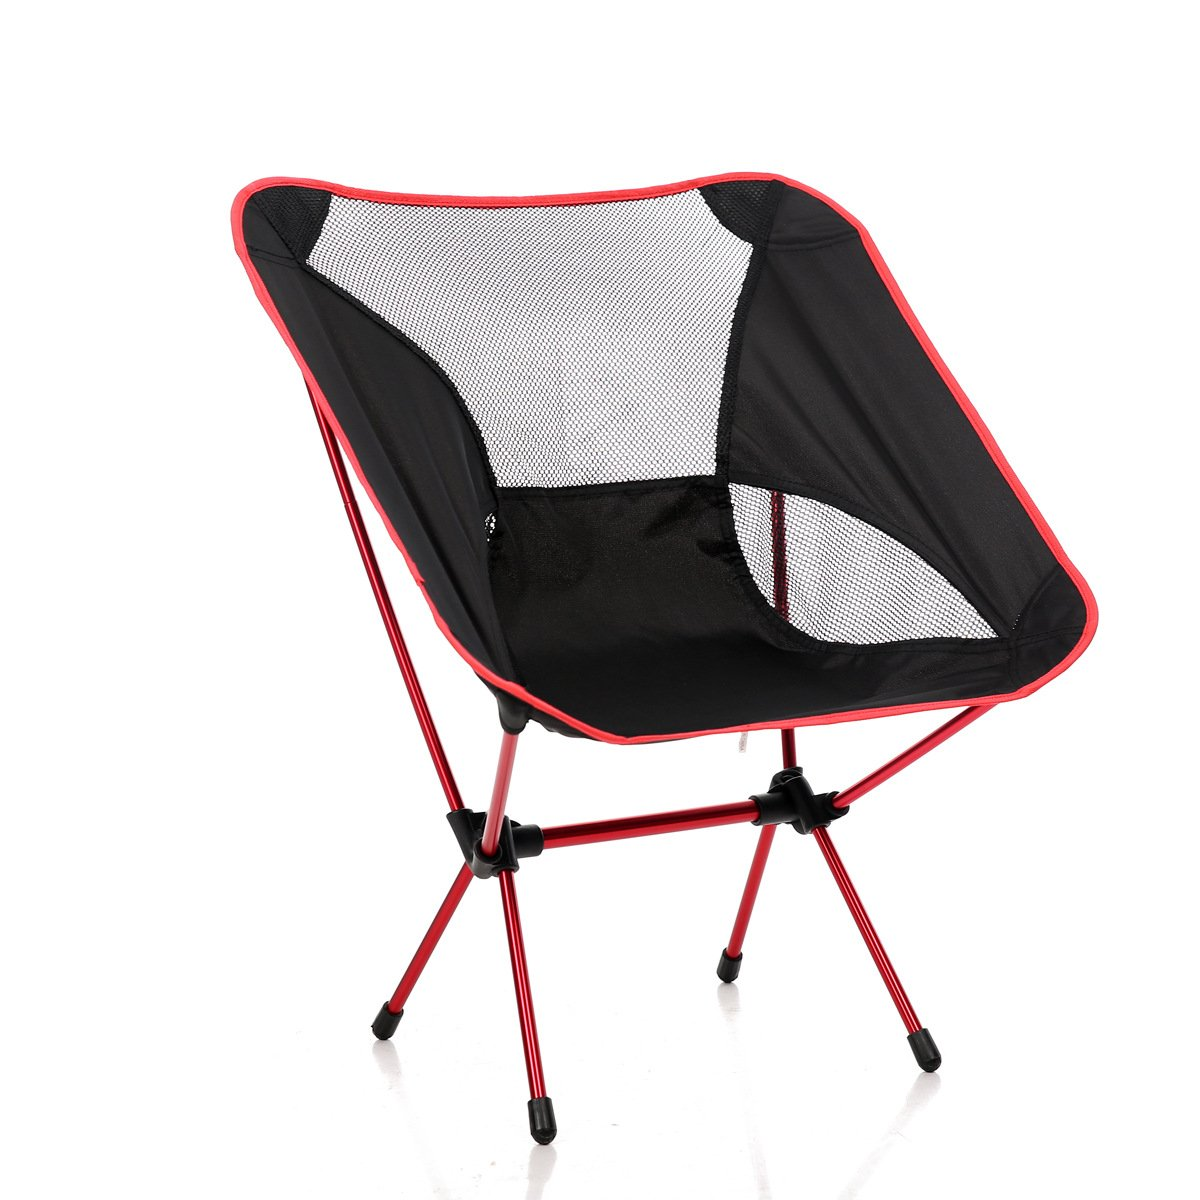 cotoxo Portable Folding Camp椅子Ultralight Backpacking Travel Chair with Carryバッグ、コンパクト& Heavy Duty forキャンプピクニックビーチ祭ハイキング釣りアウトドア活動 B077SQCJ28  レッド